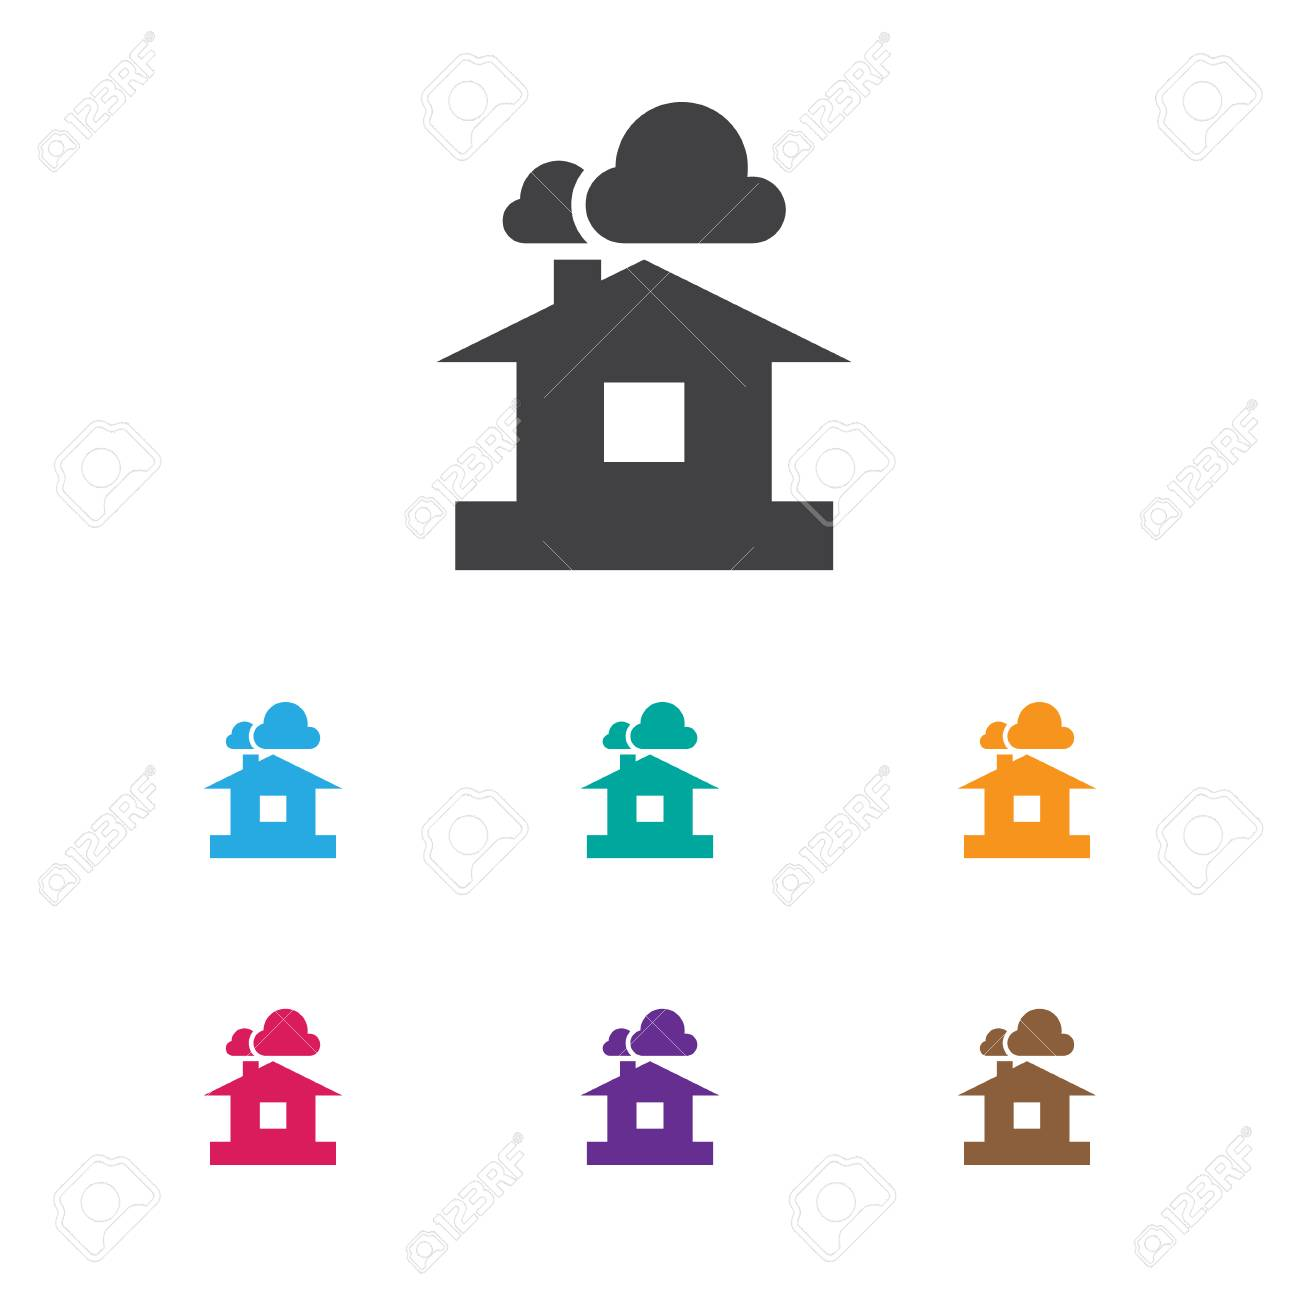 Vector Illustration Of Air Symbol On Shelter Icon. Premium Quality..